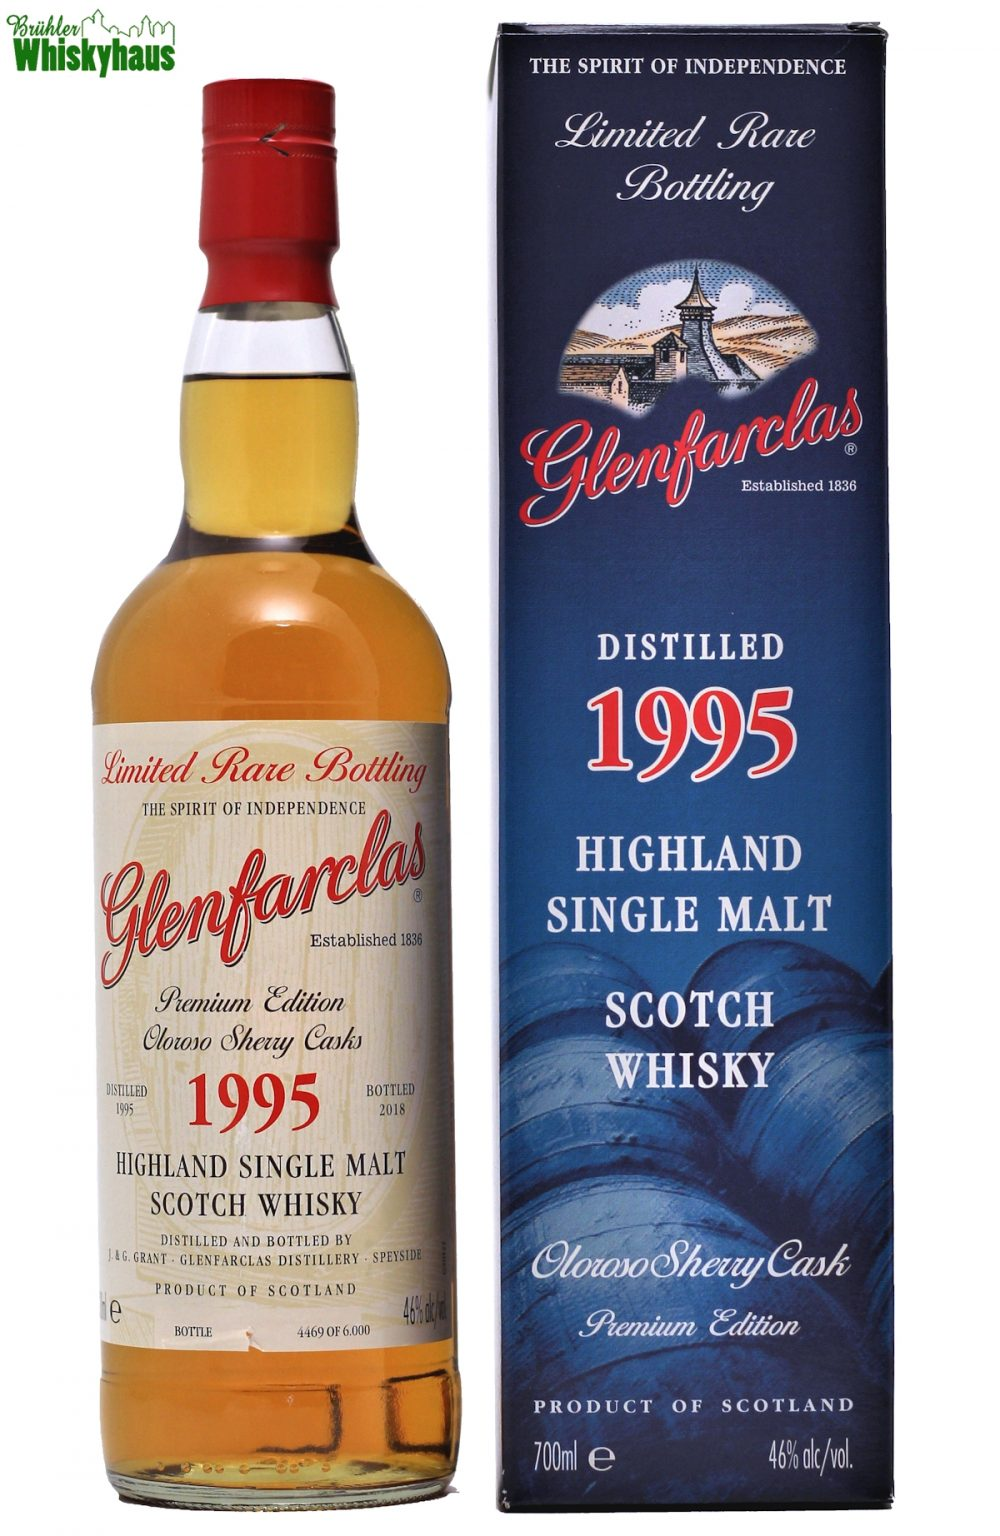 Glenfarclas Vintage 1995 - Premium Edition Oloroso Sherry Casks - Highland Single Malt Scotch Whisky